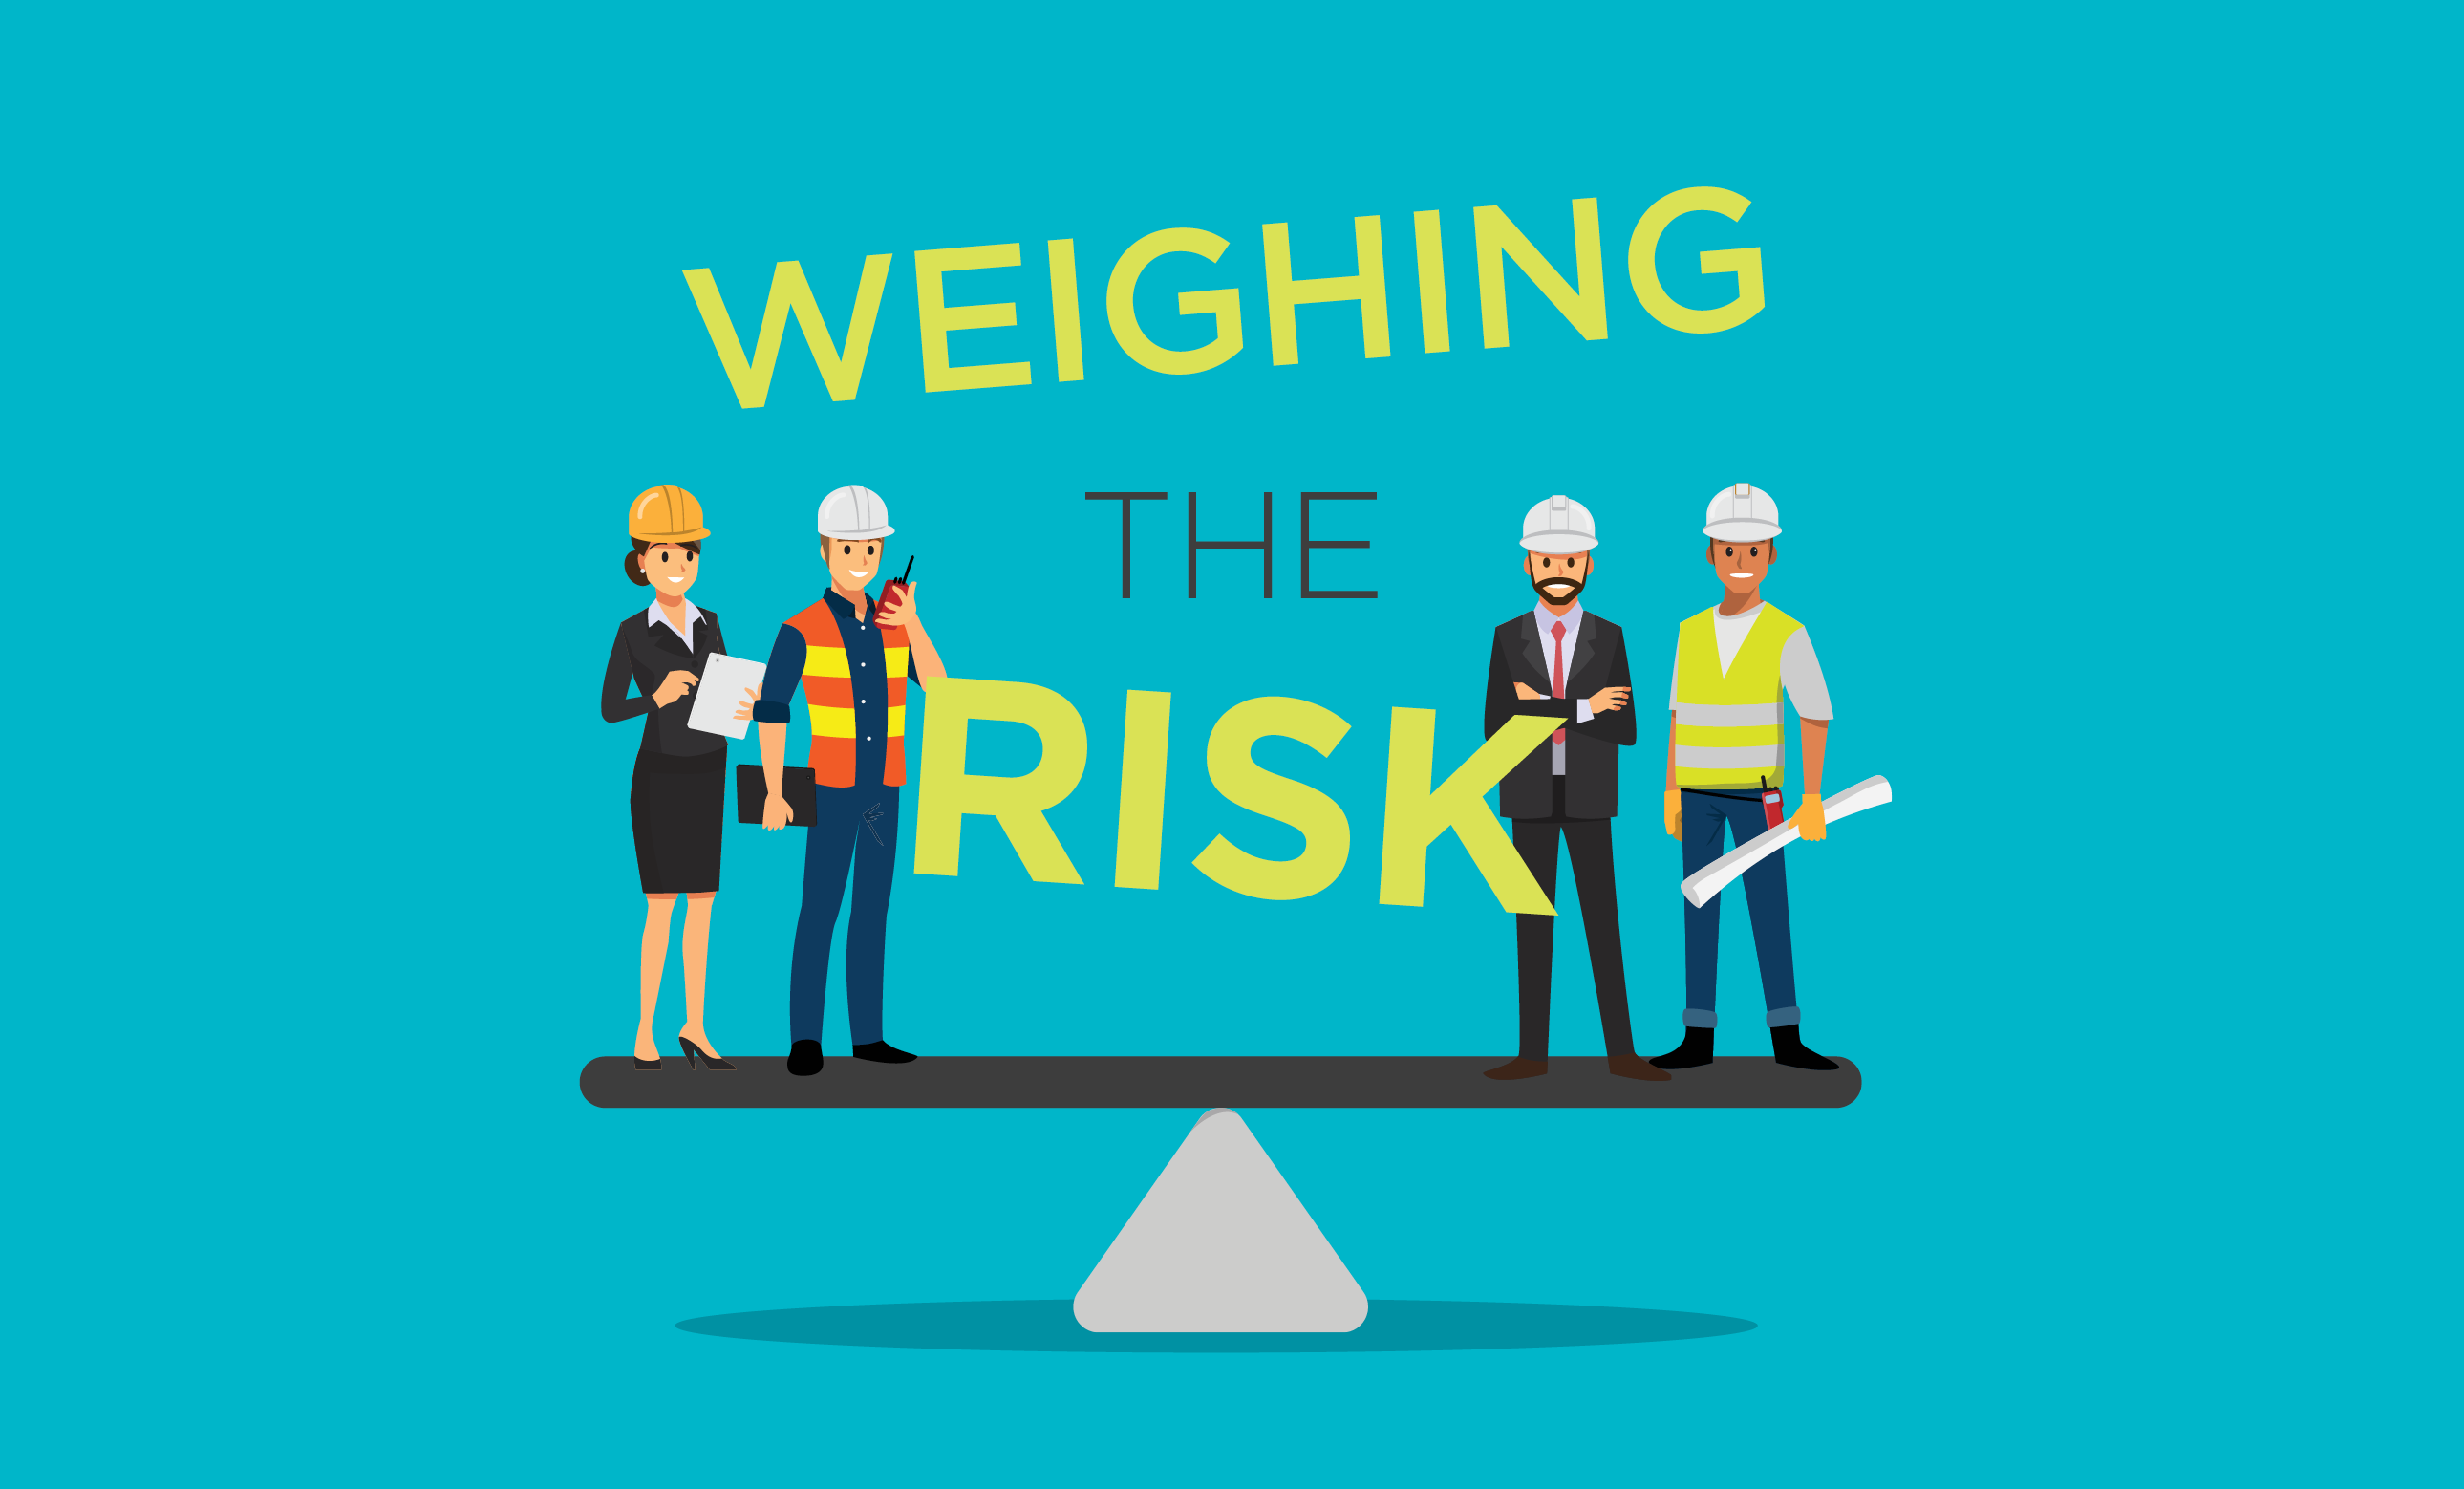 Weighing the risk - The benefits of hiring subcontractors varies among companies